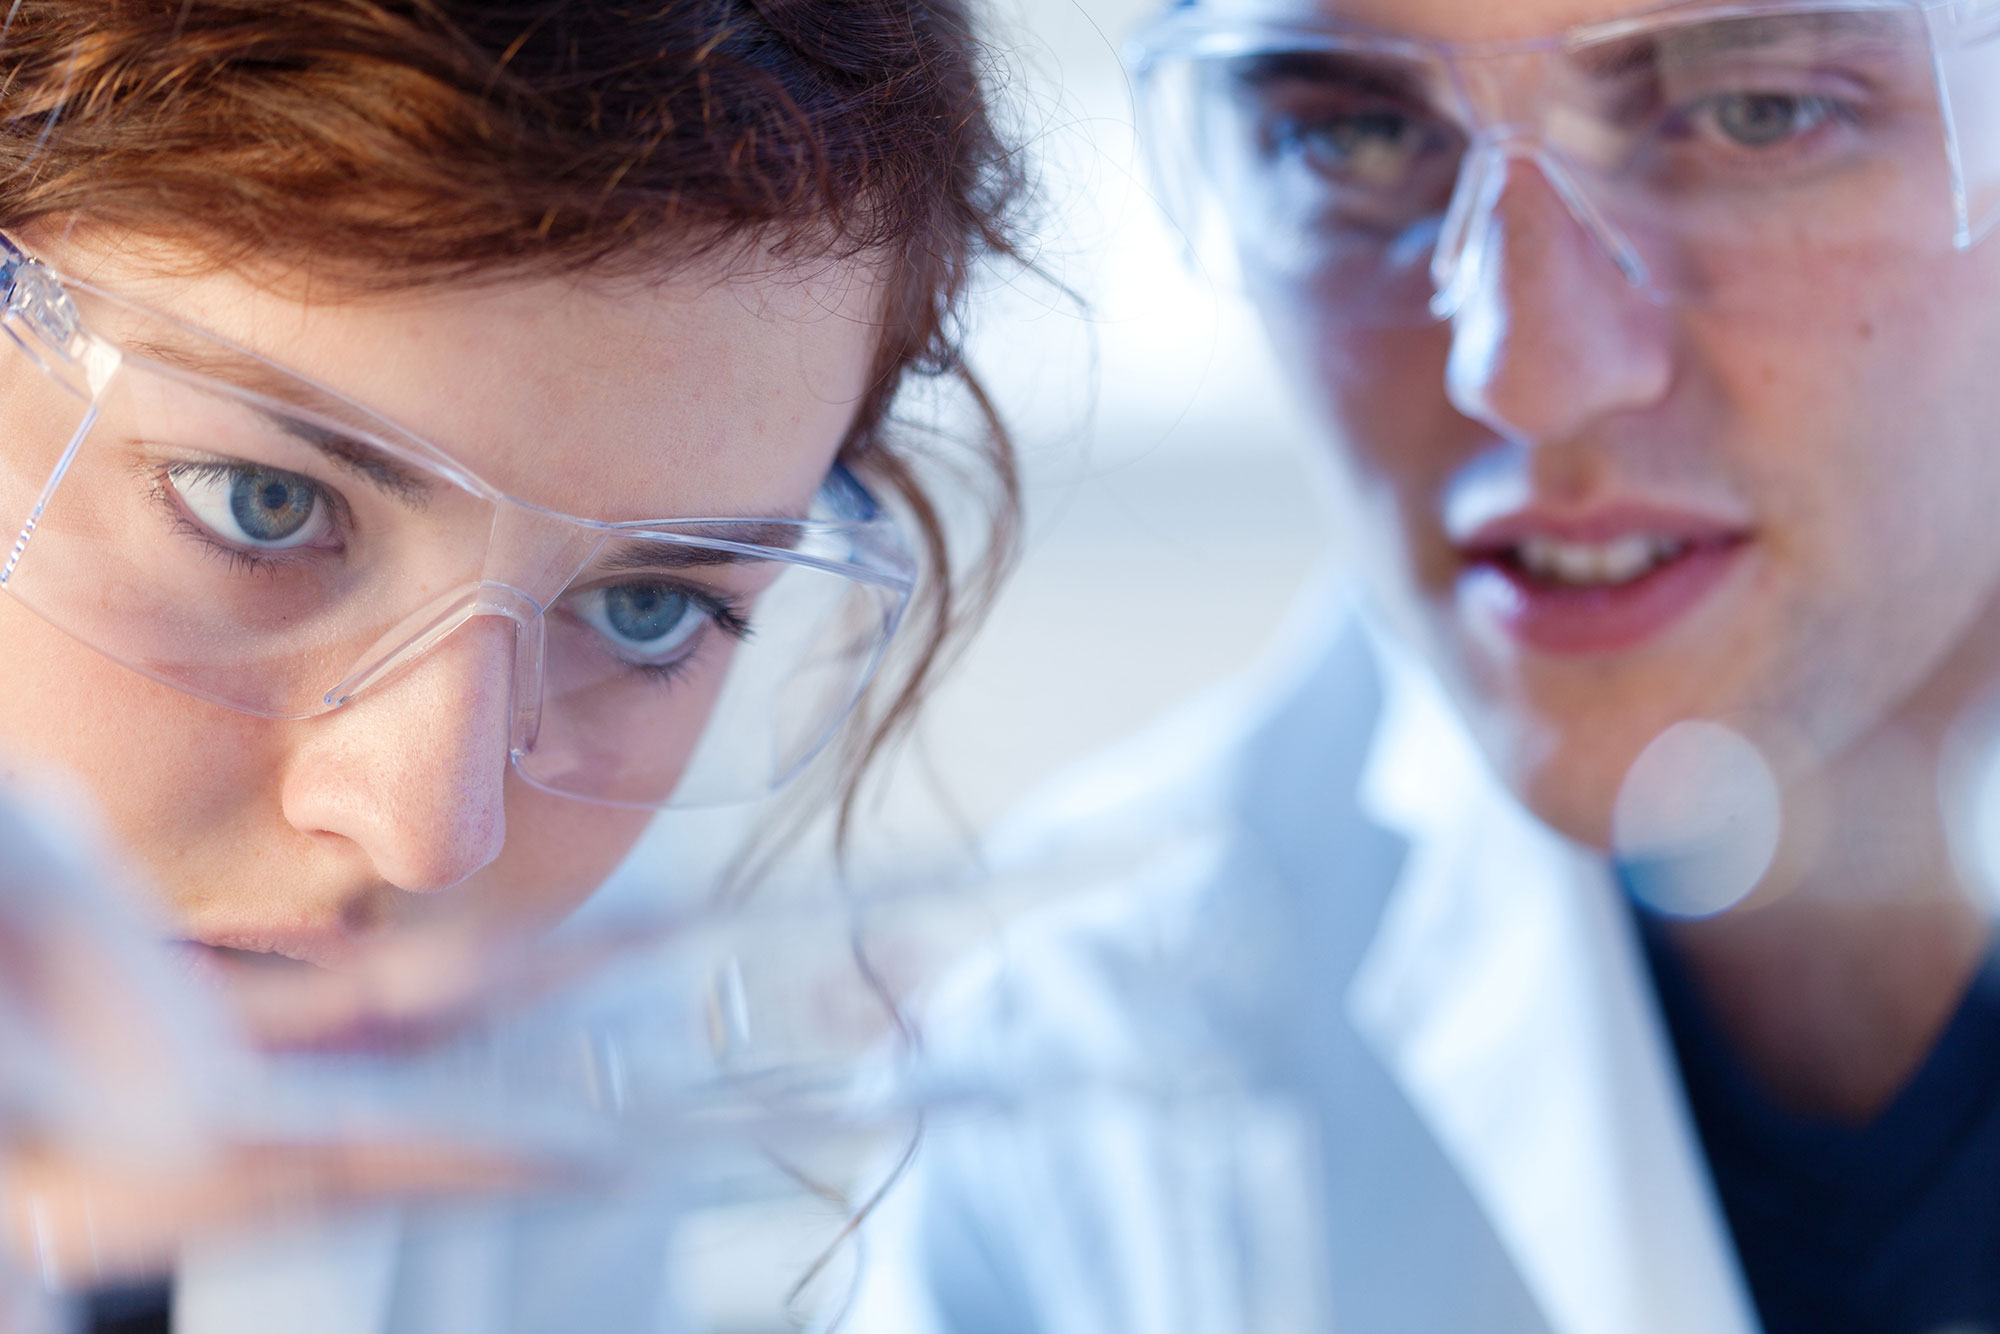 Two scientists observe a test tube in a lab.